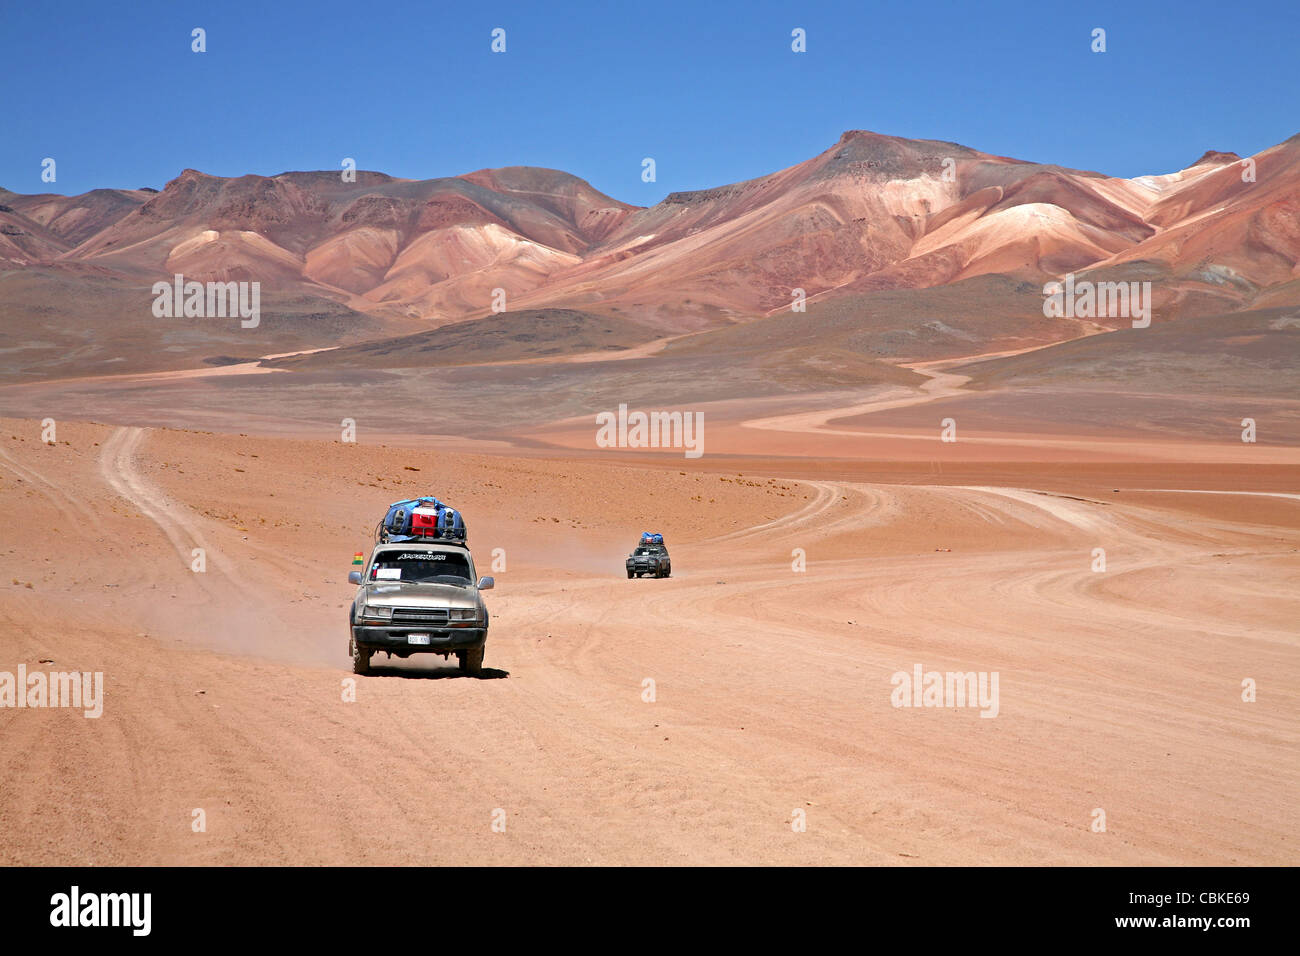 Four-wheel drive vehicles driving on dirt-track on the Altiplano in Bolivia - Stock Image